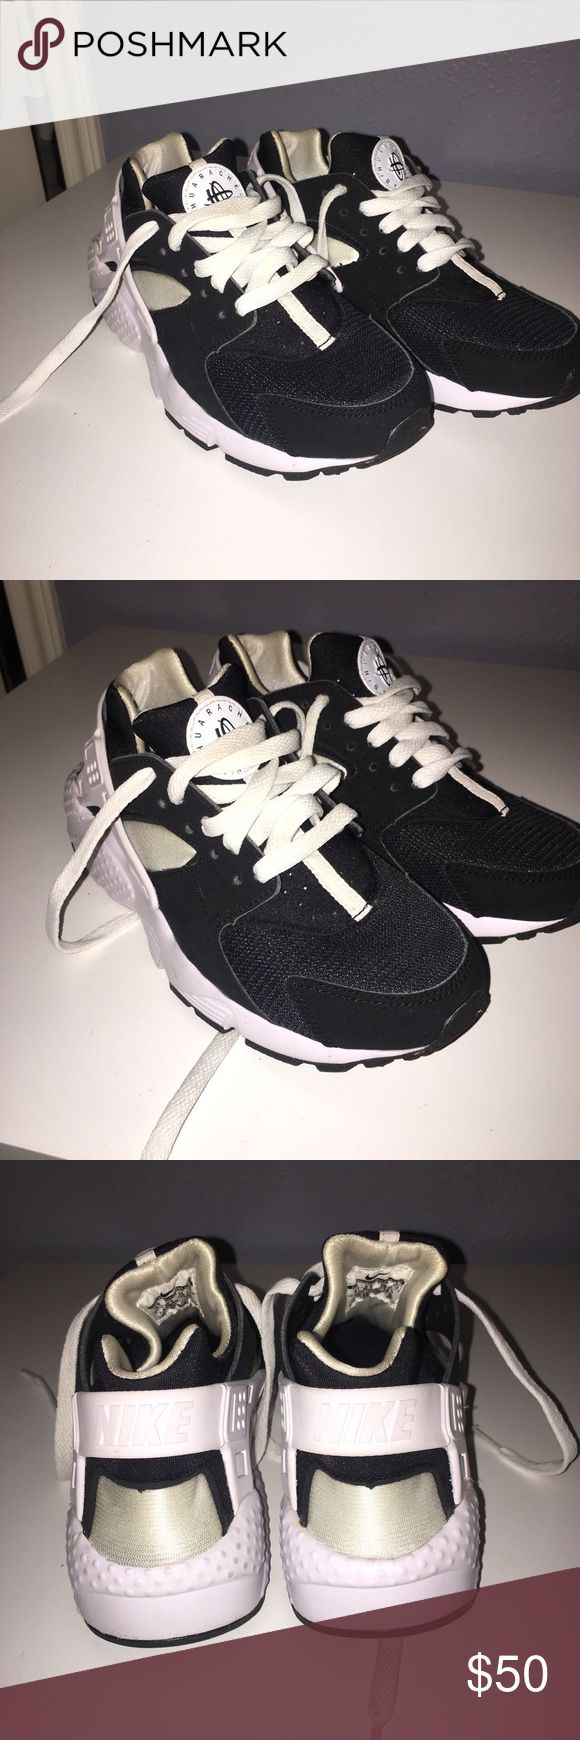 Black & White huarache By nike, worn twice Size 4Y (youth) kids negotiable for both girl and boy Nike Shoes Sneakers